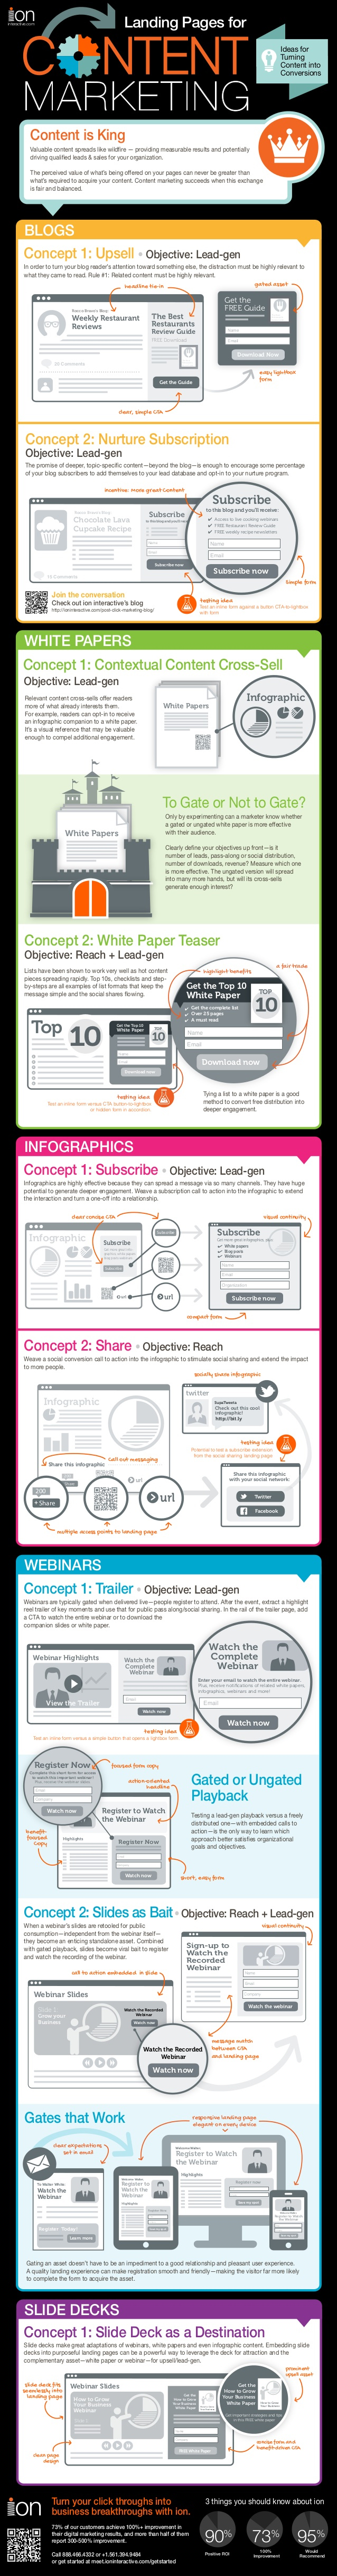 Infographic with tips to improve content marketing conversion rate.